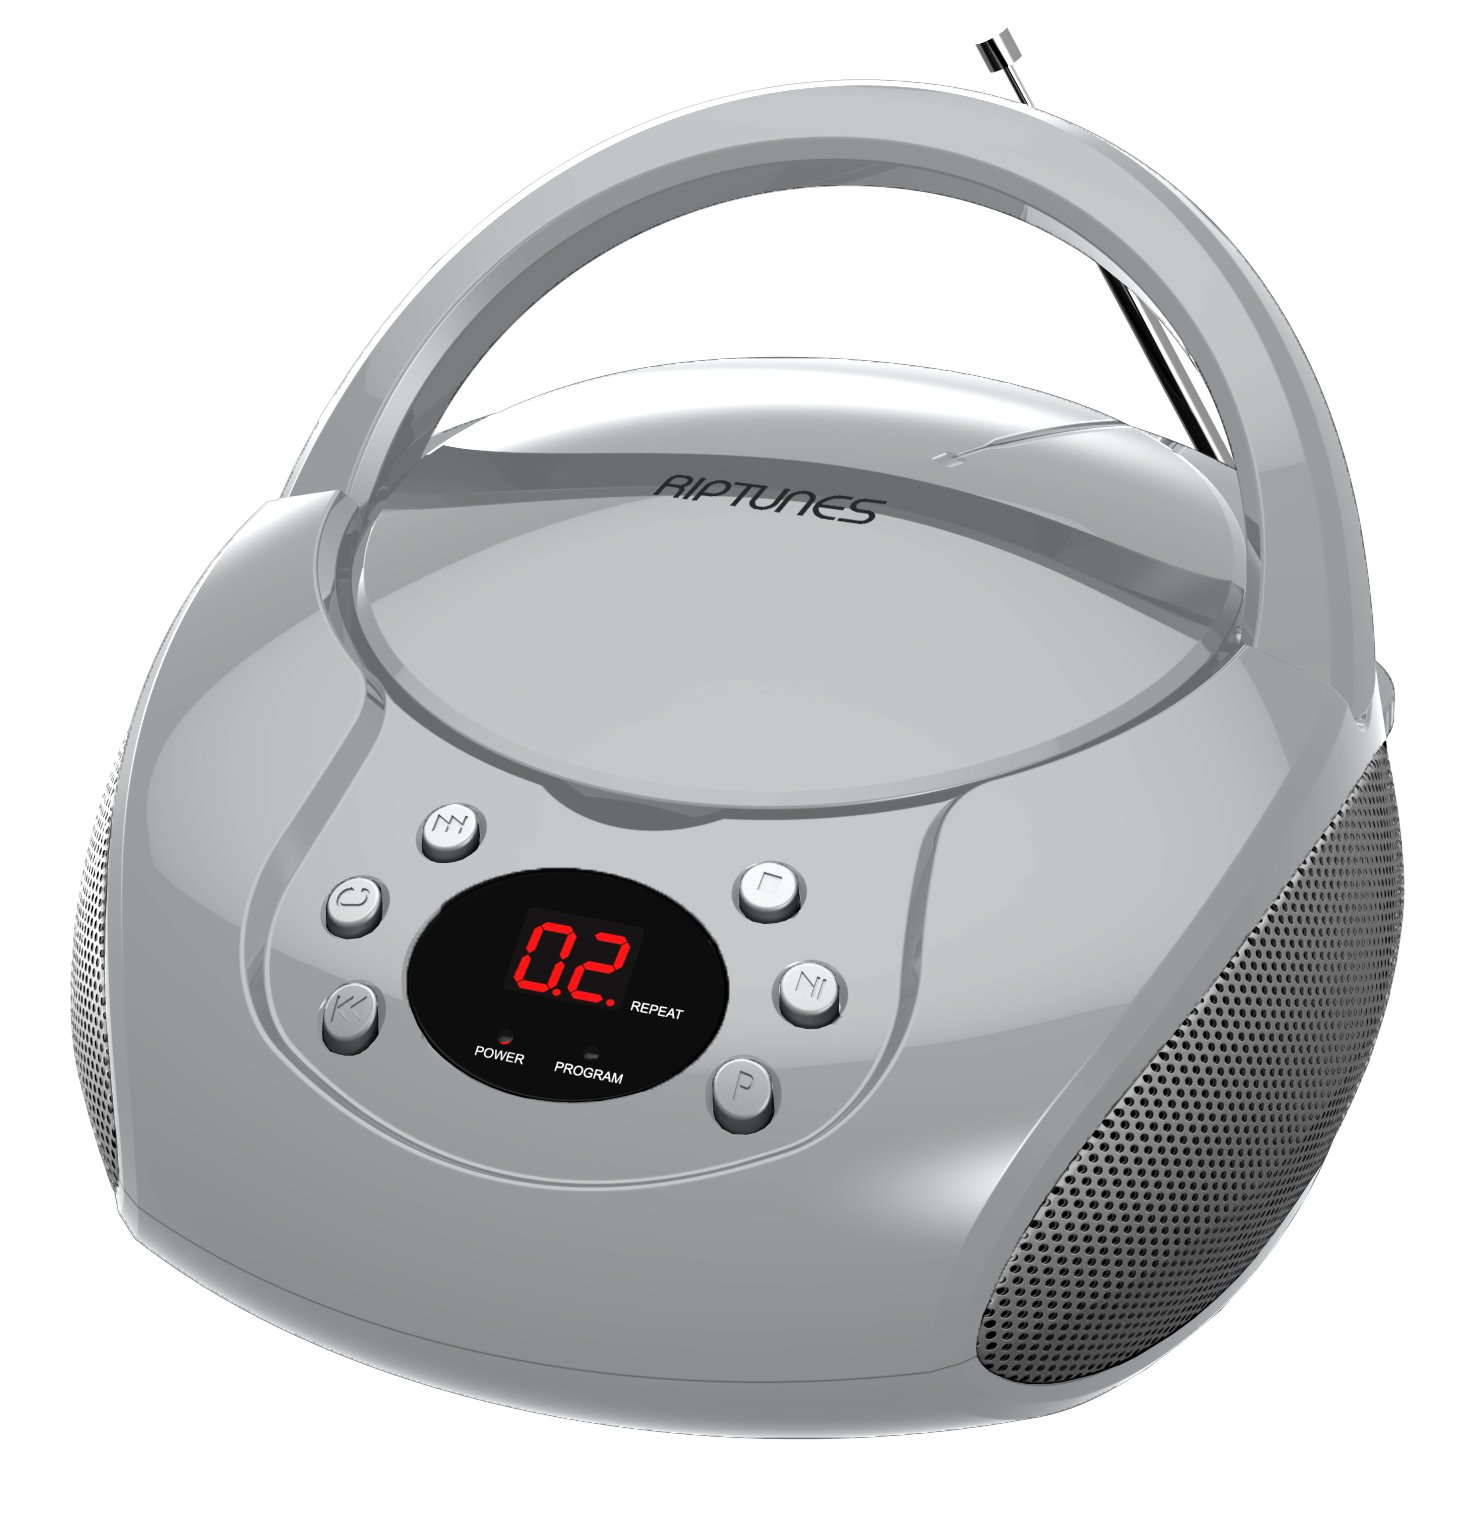 RipTunes CD player Boombox- Portable silver Aux-In CD Boombox, AM/FM Radio For Assured Amusement